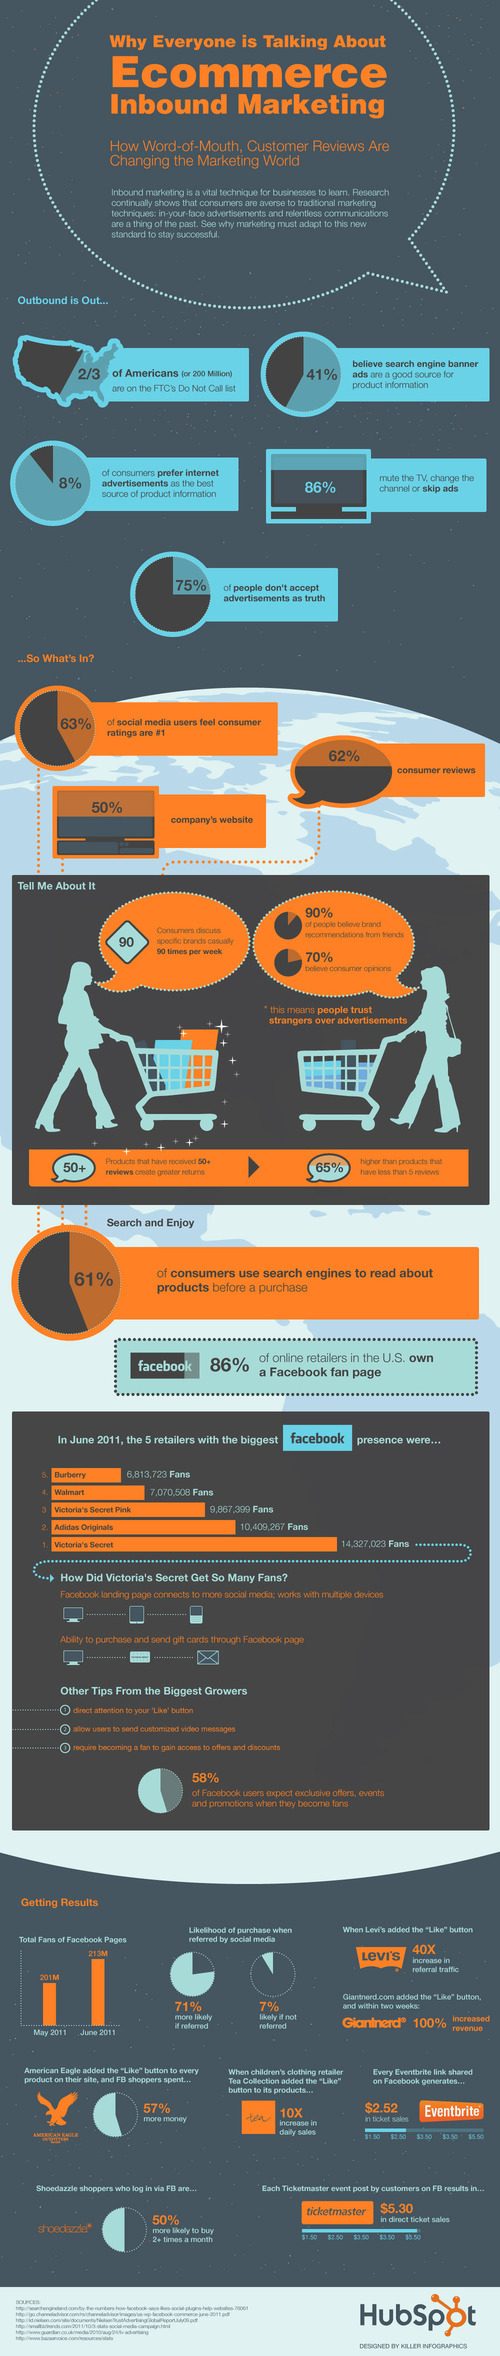 How Does Social Media Affect Purchase Decisions [INFOGRAPHIC]